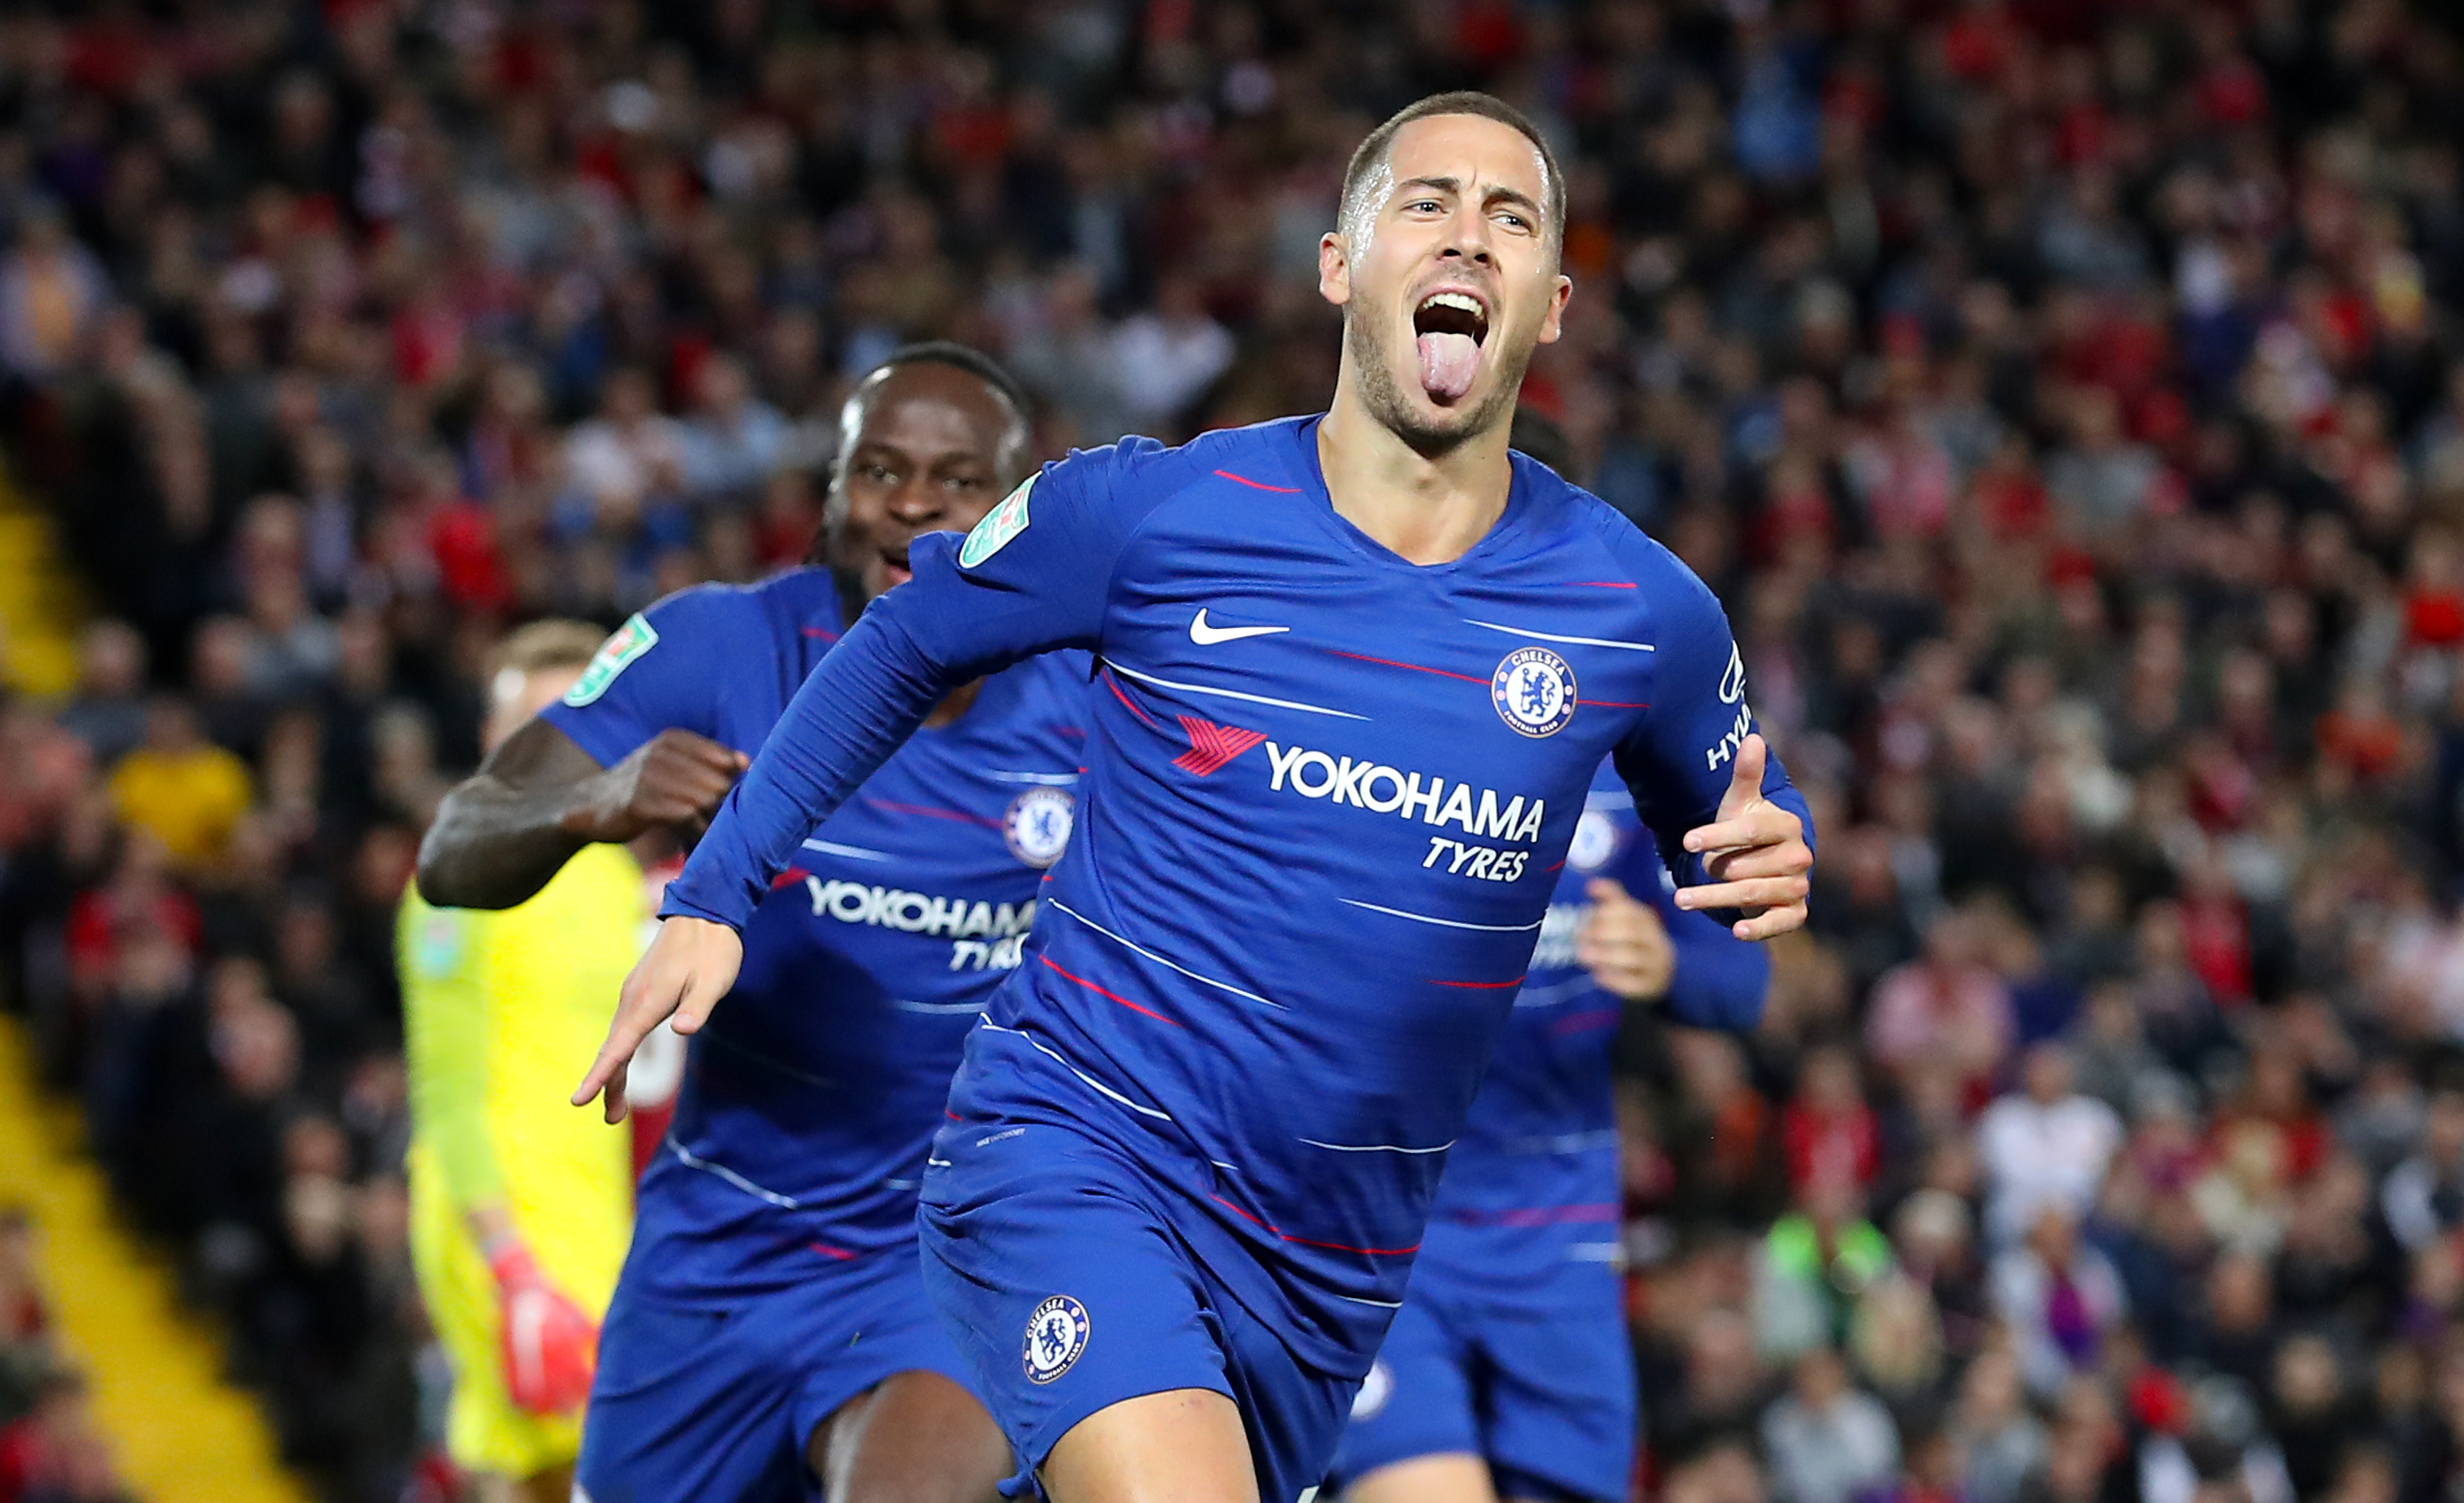 EPL: Jorginho reveals who made him snubbed Man City for Chelsea